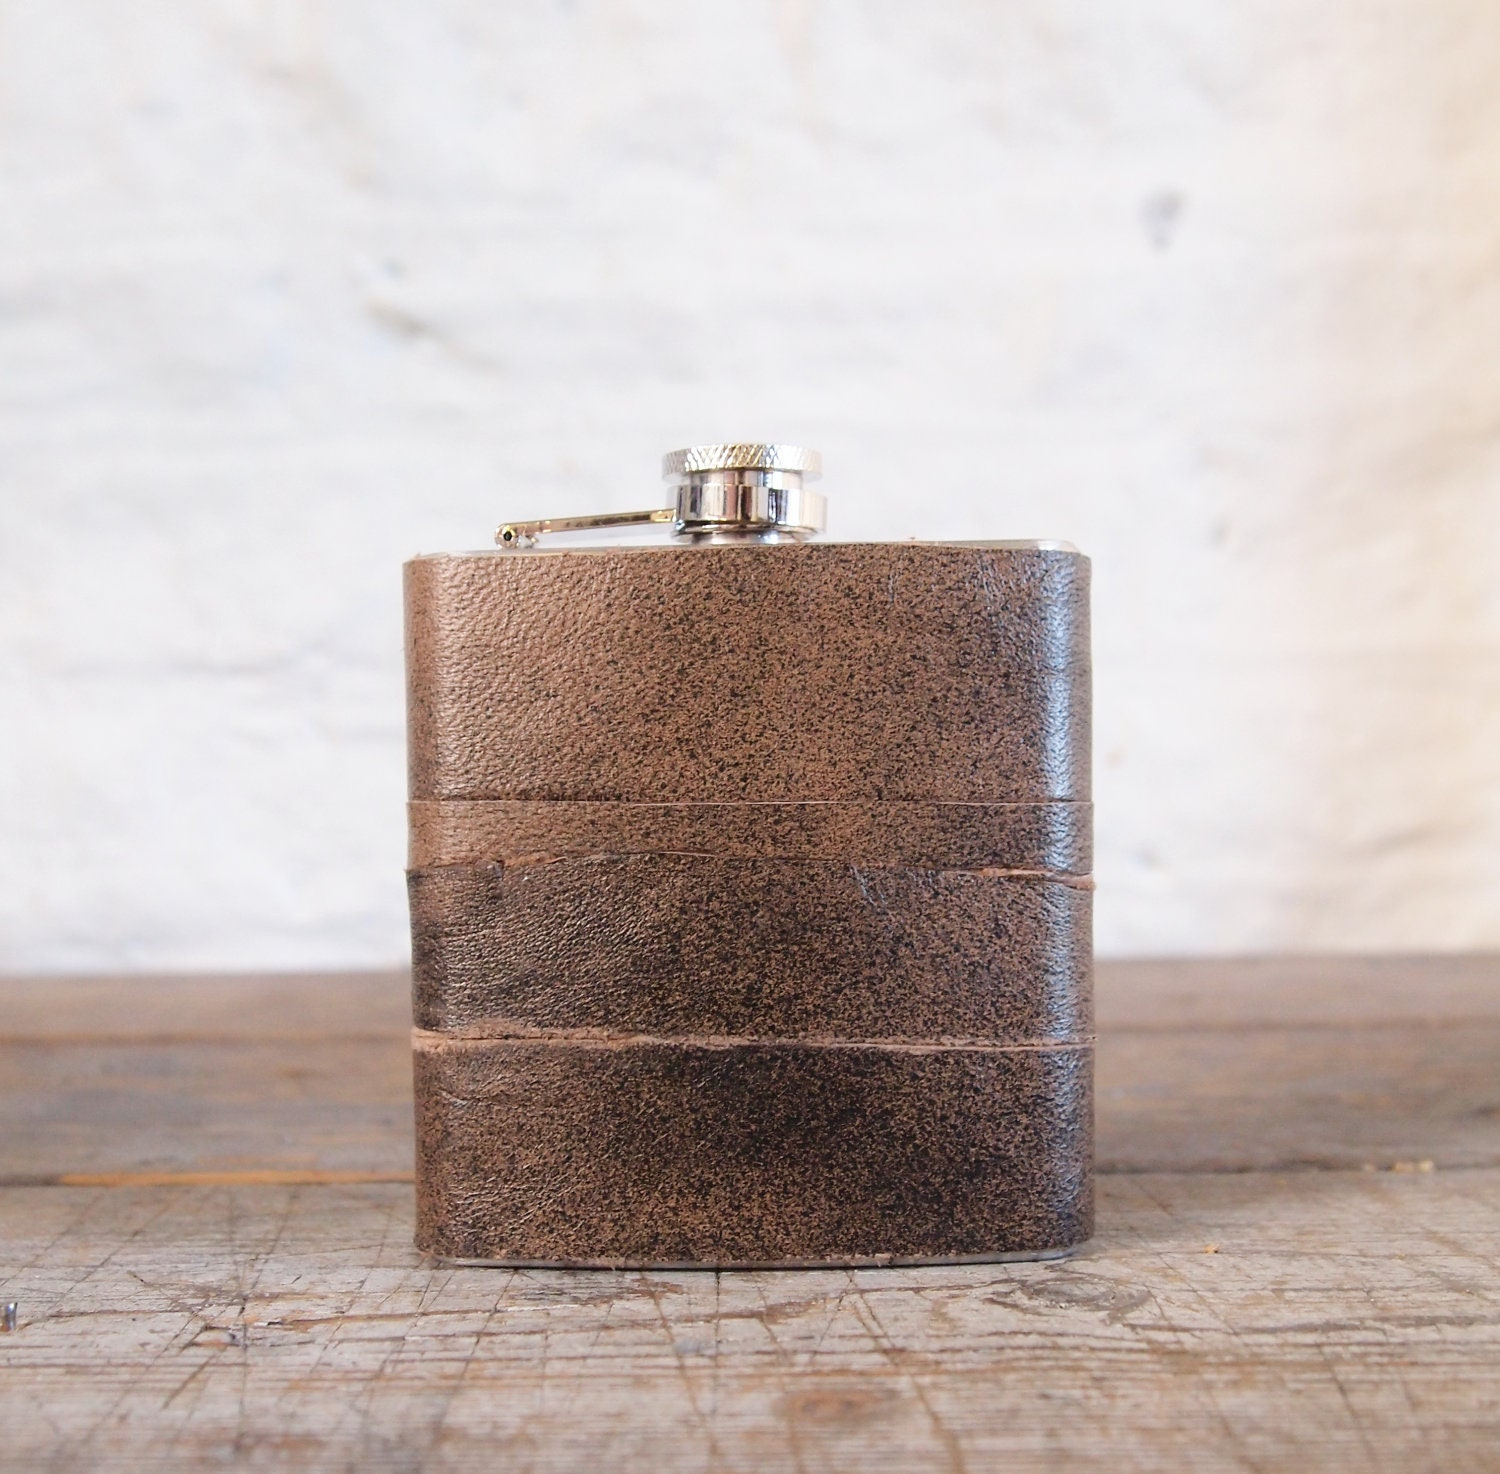 Customized Leather Hip flask - Recycled Leather Strips, Hand Engraved, Best Man Gift - Gx2homegrown